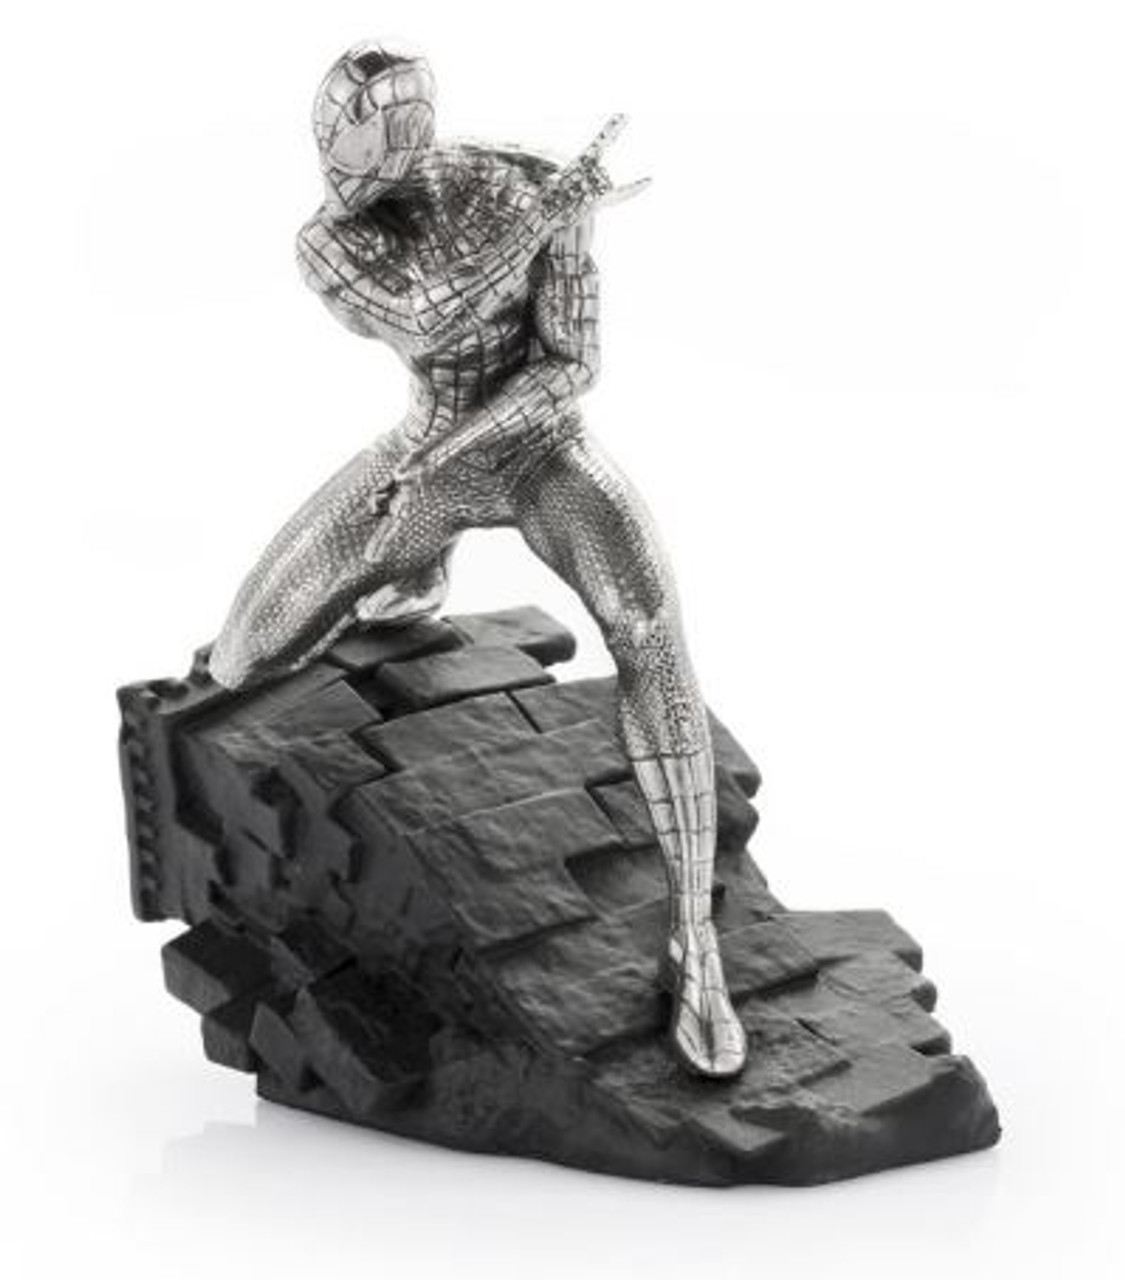 Spider-Man Webslinger Figurine